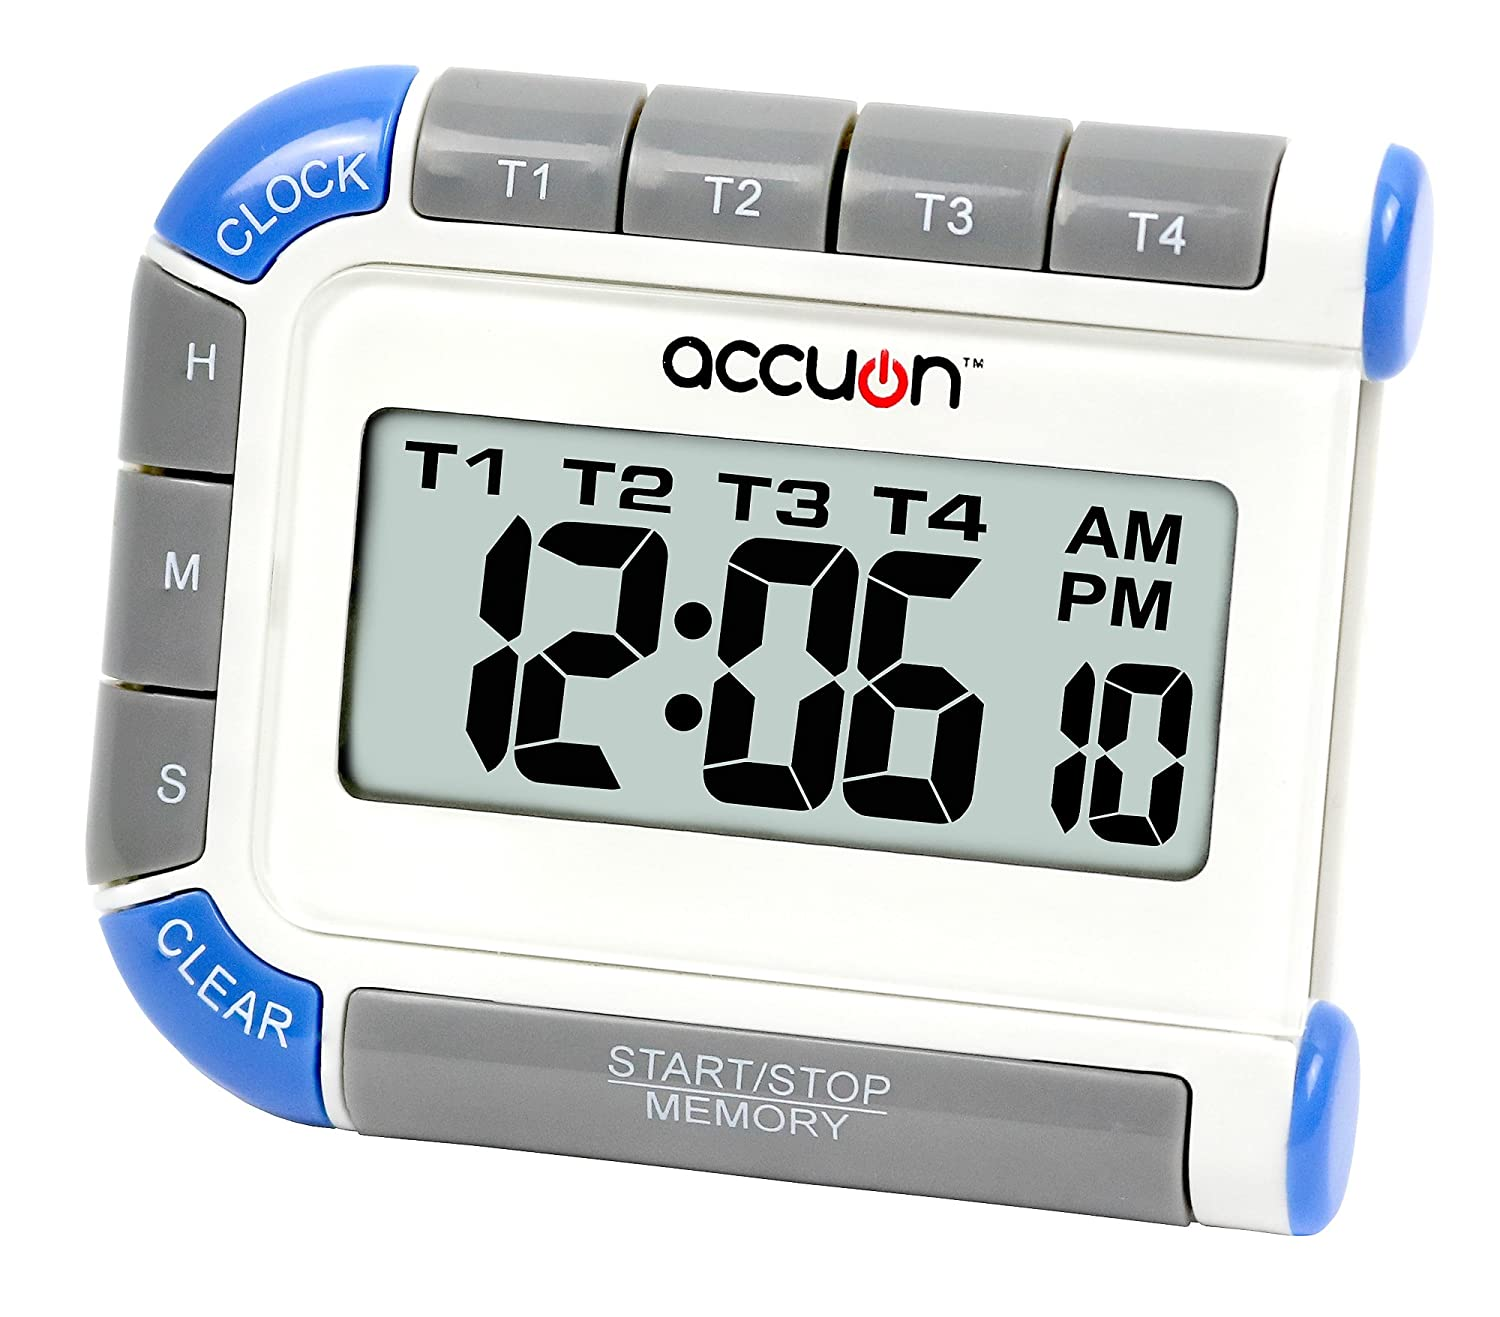 Accuon Digital 4 Channel Timer and Clock ACU0201